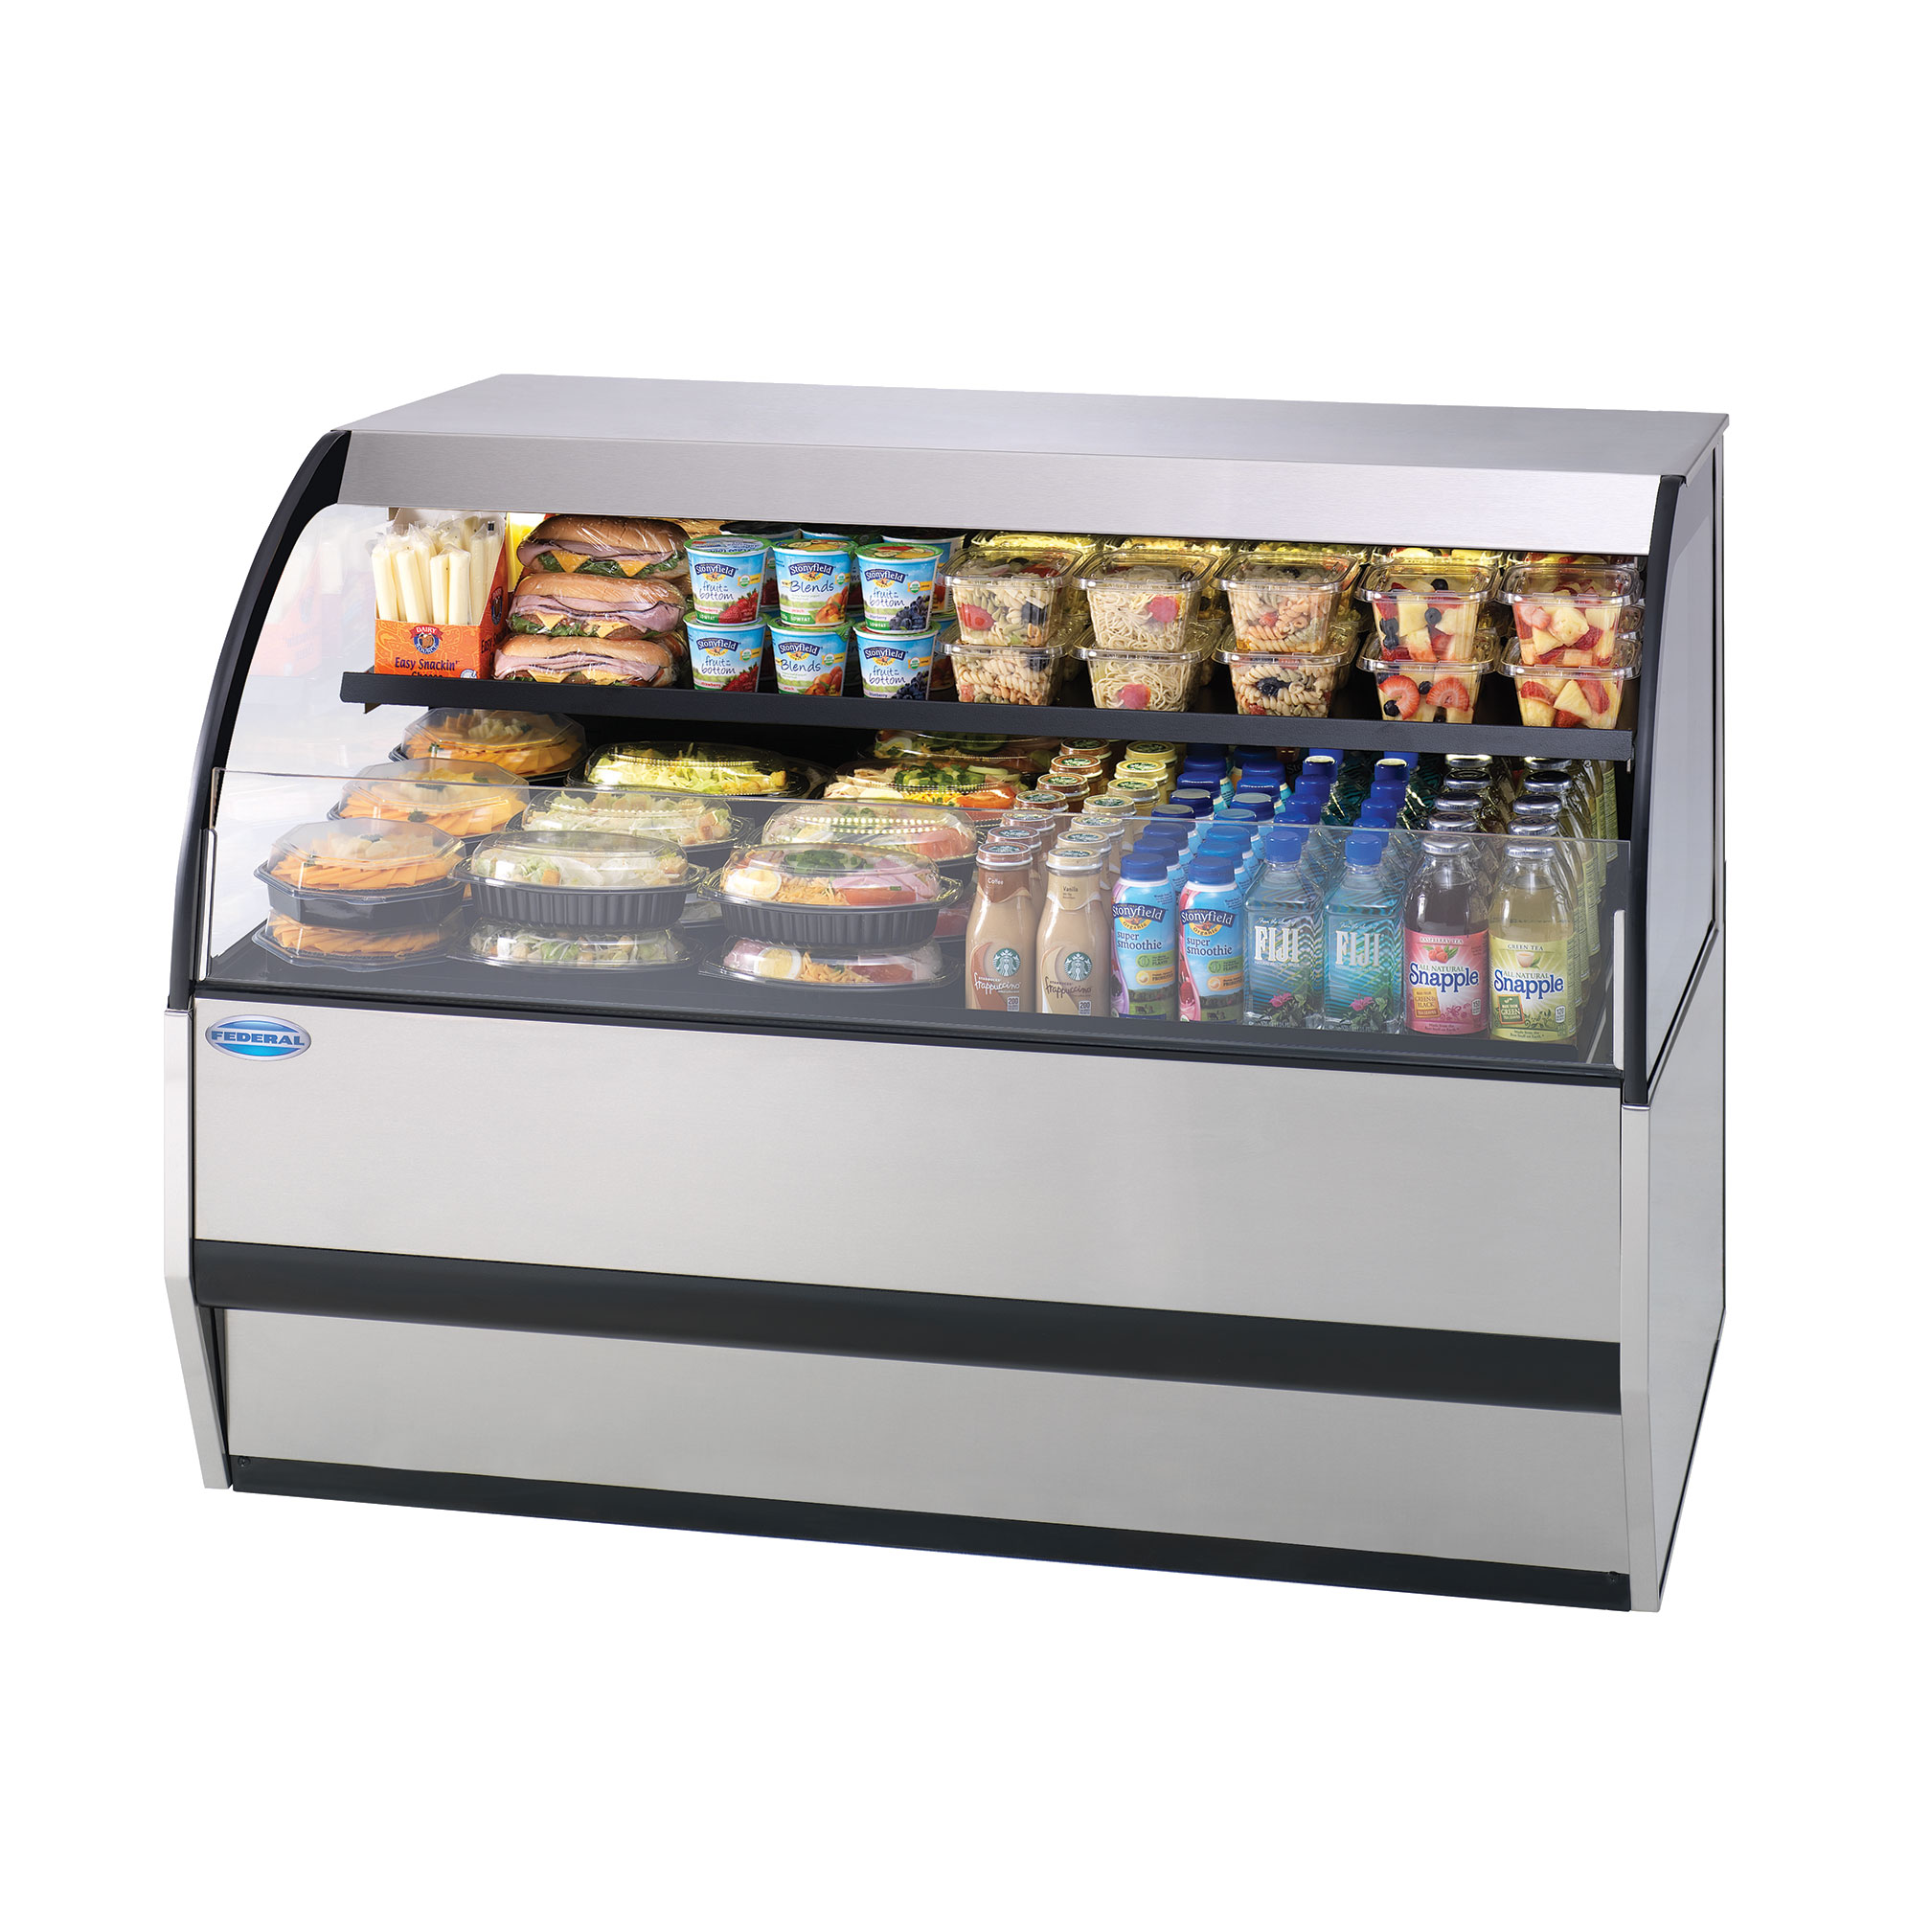 Federal Industries SSRVS-3633 display case, refrigerated, self-serve